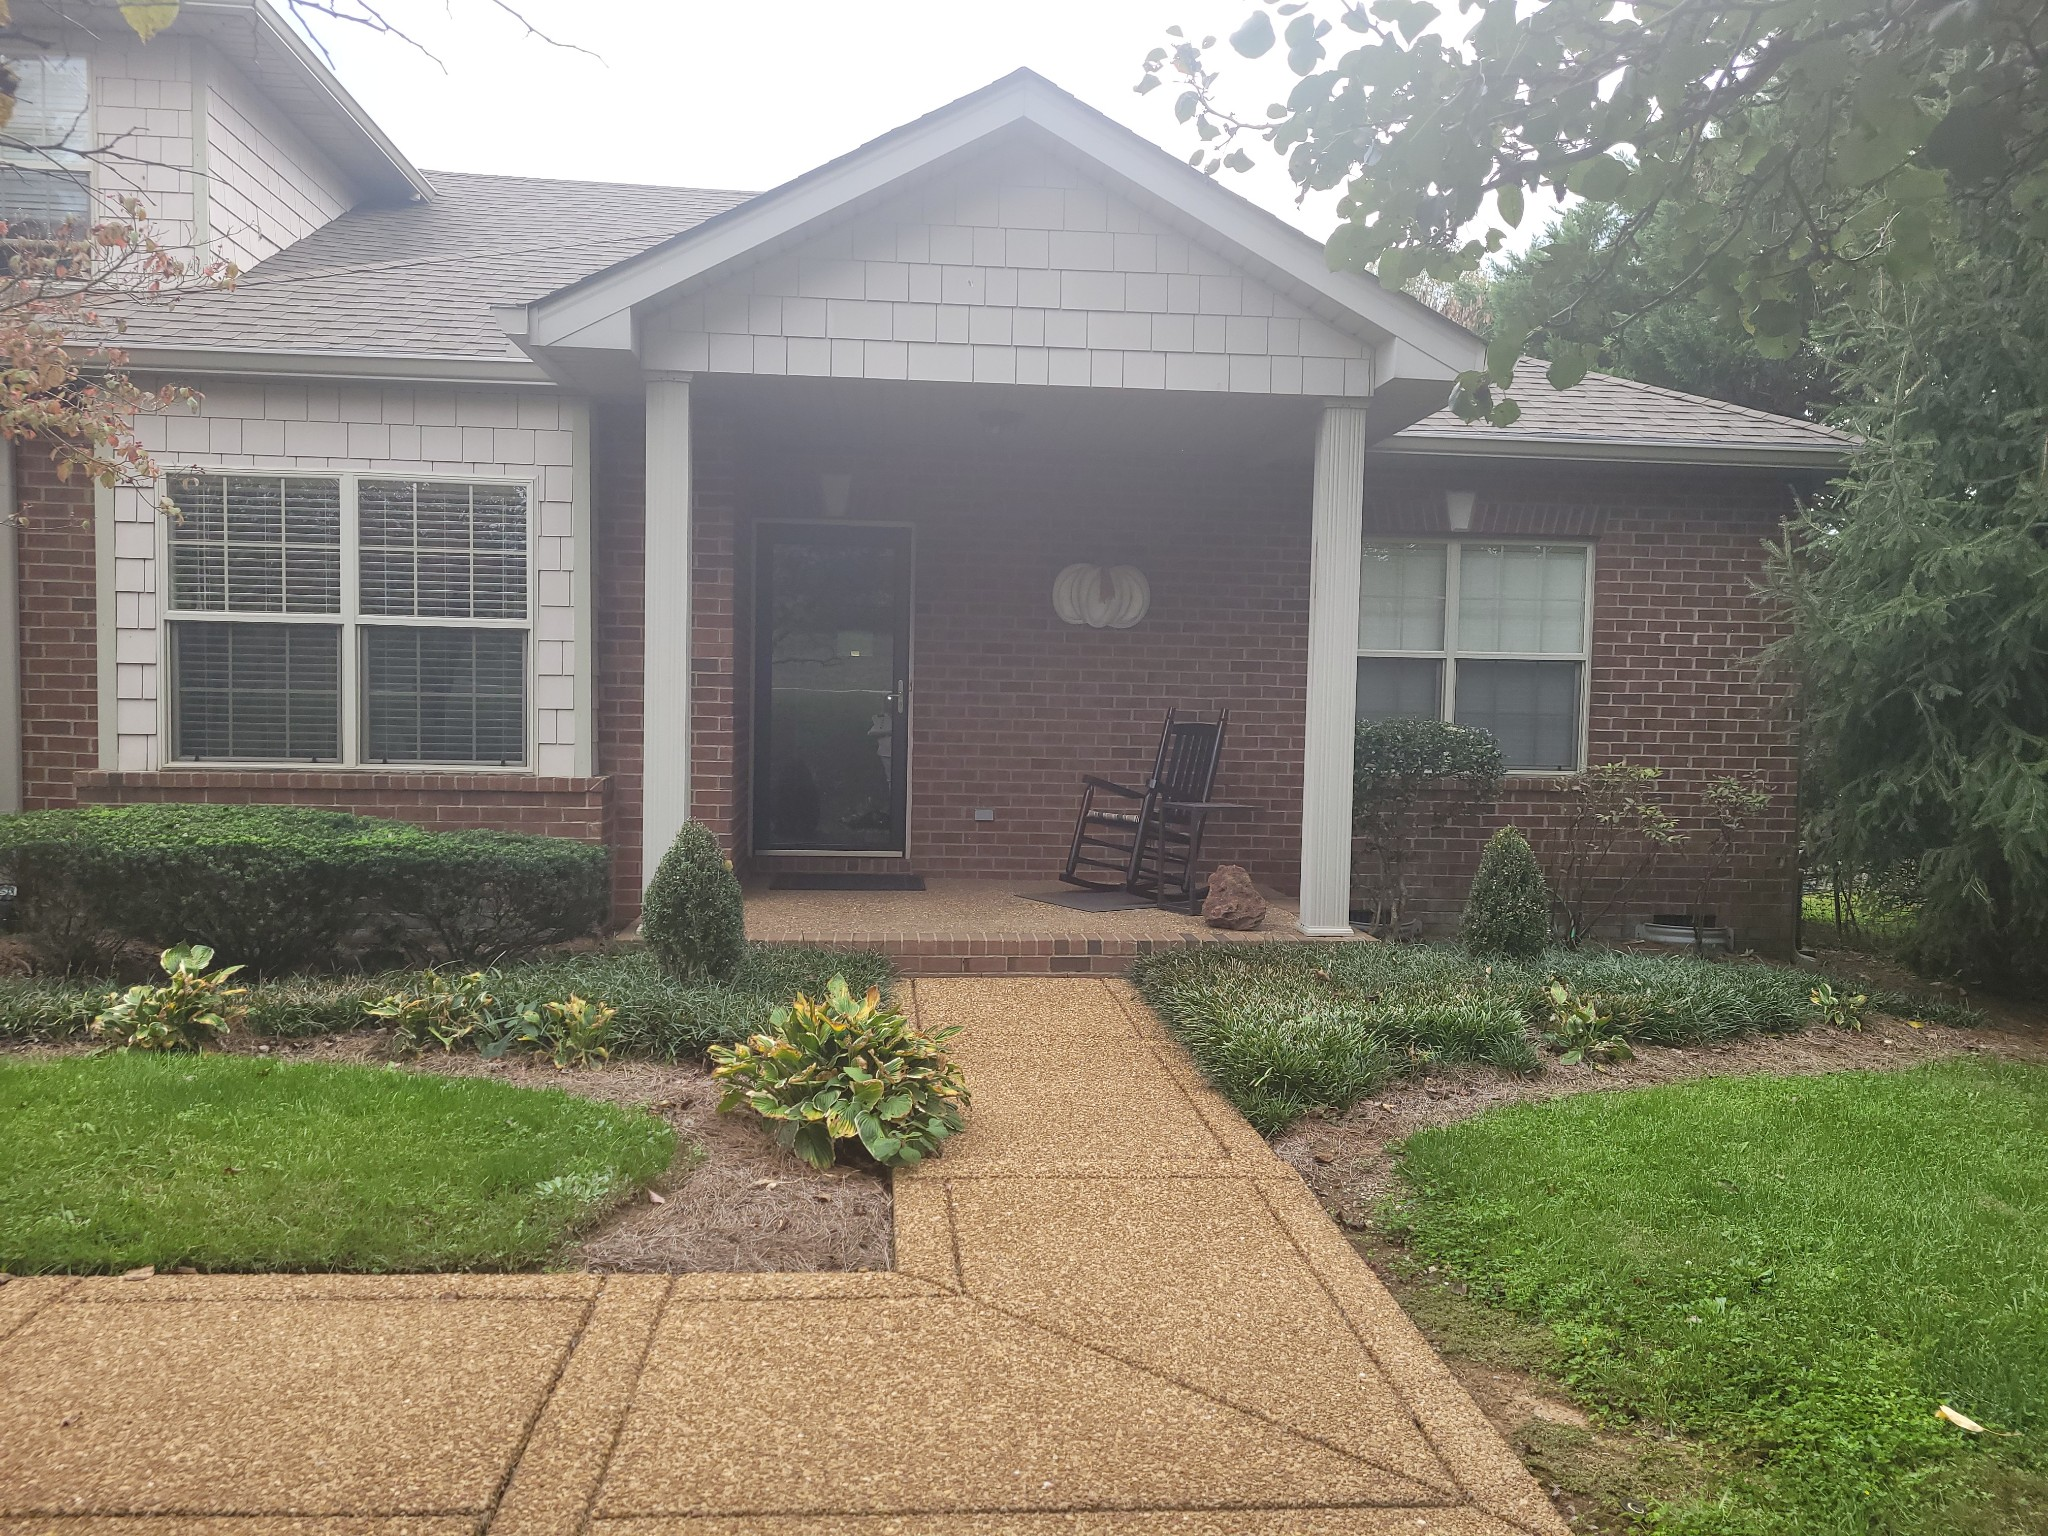 New Laminate Hardwoods, Built-Ins for crafts or Office W/ Murphy Bed. New HVAC, New Roof 2020, Updated with Screened In Porch and 1 car garage. One Level. Stackable Washer & Dryer Remain. Newer Water Heater.